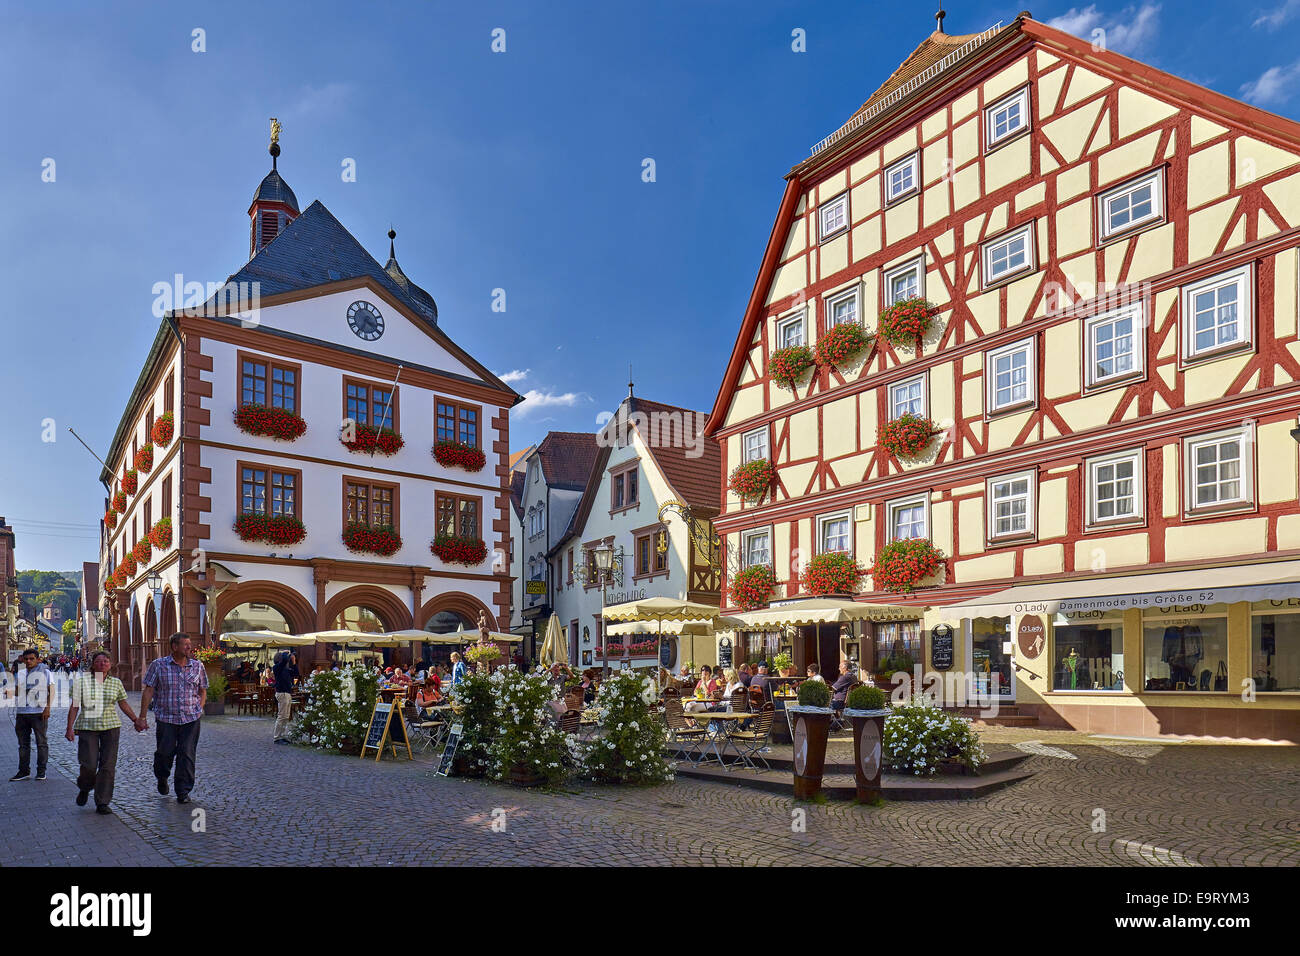 City Hall In The Old Town, Lohr Am Main, Bavaria, Germany